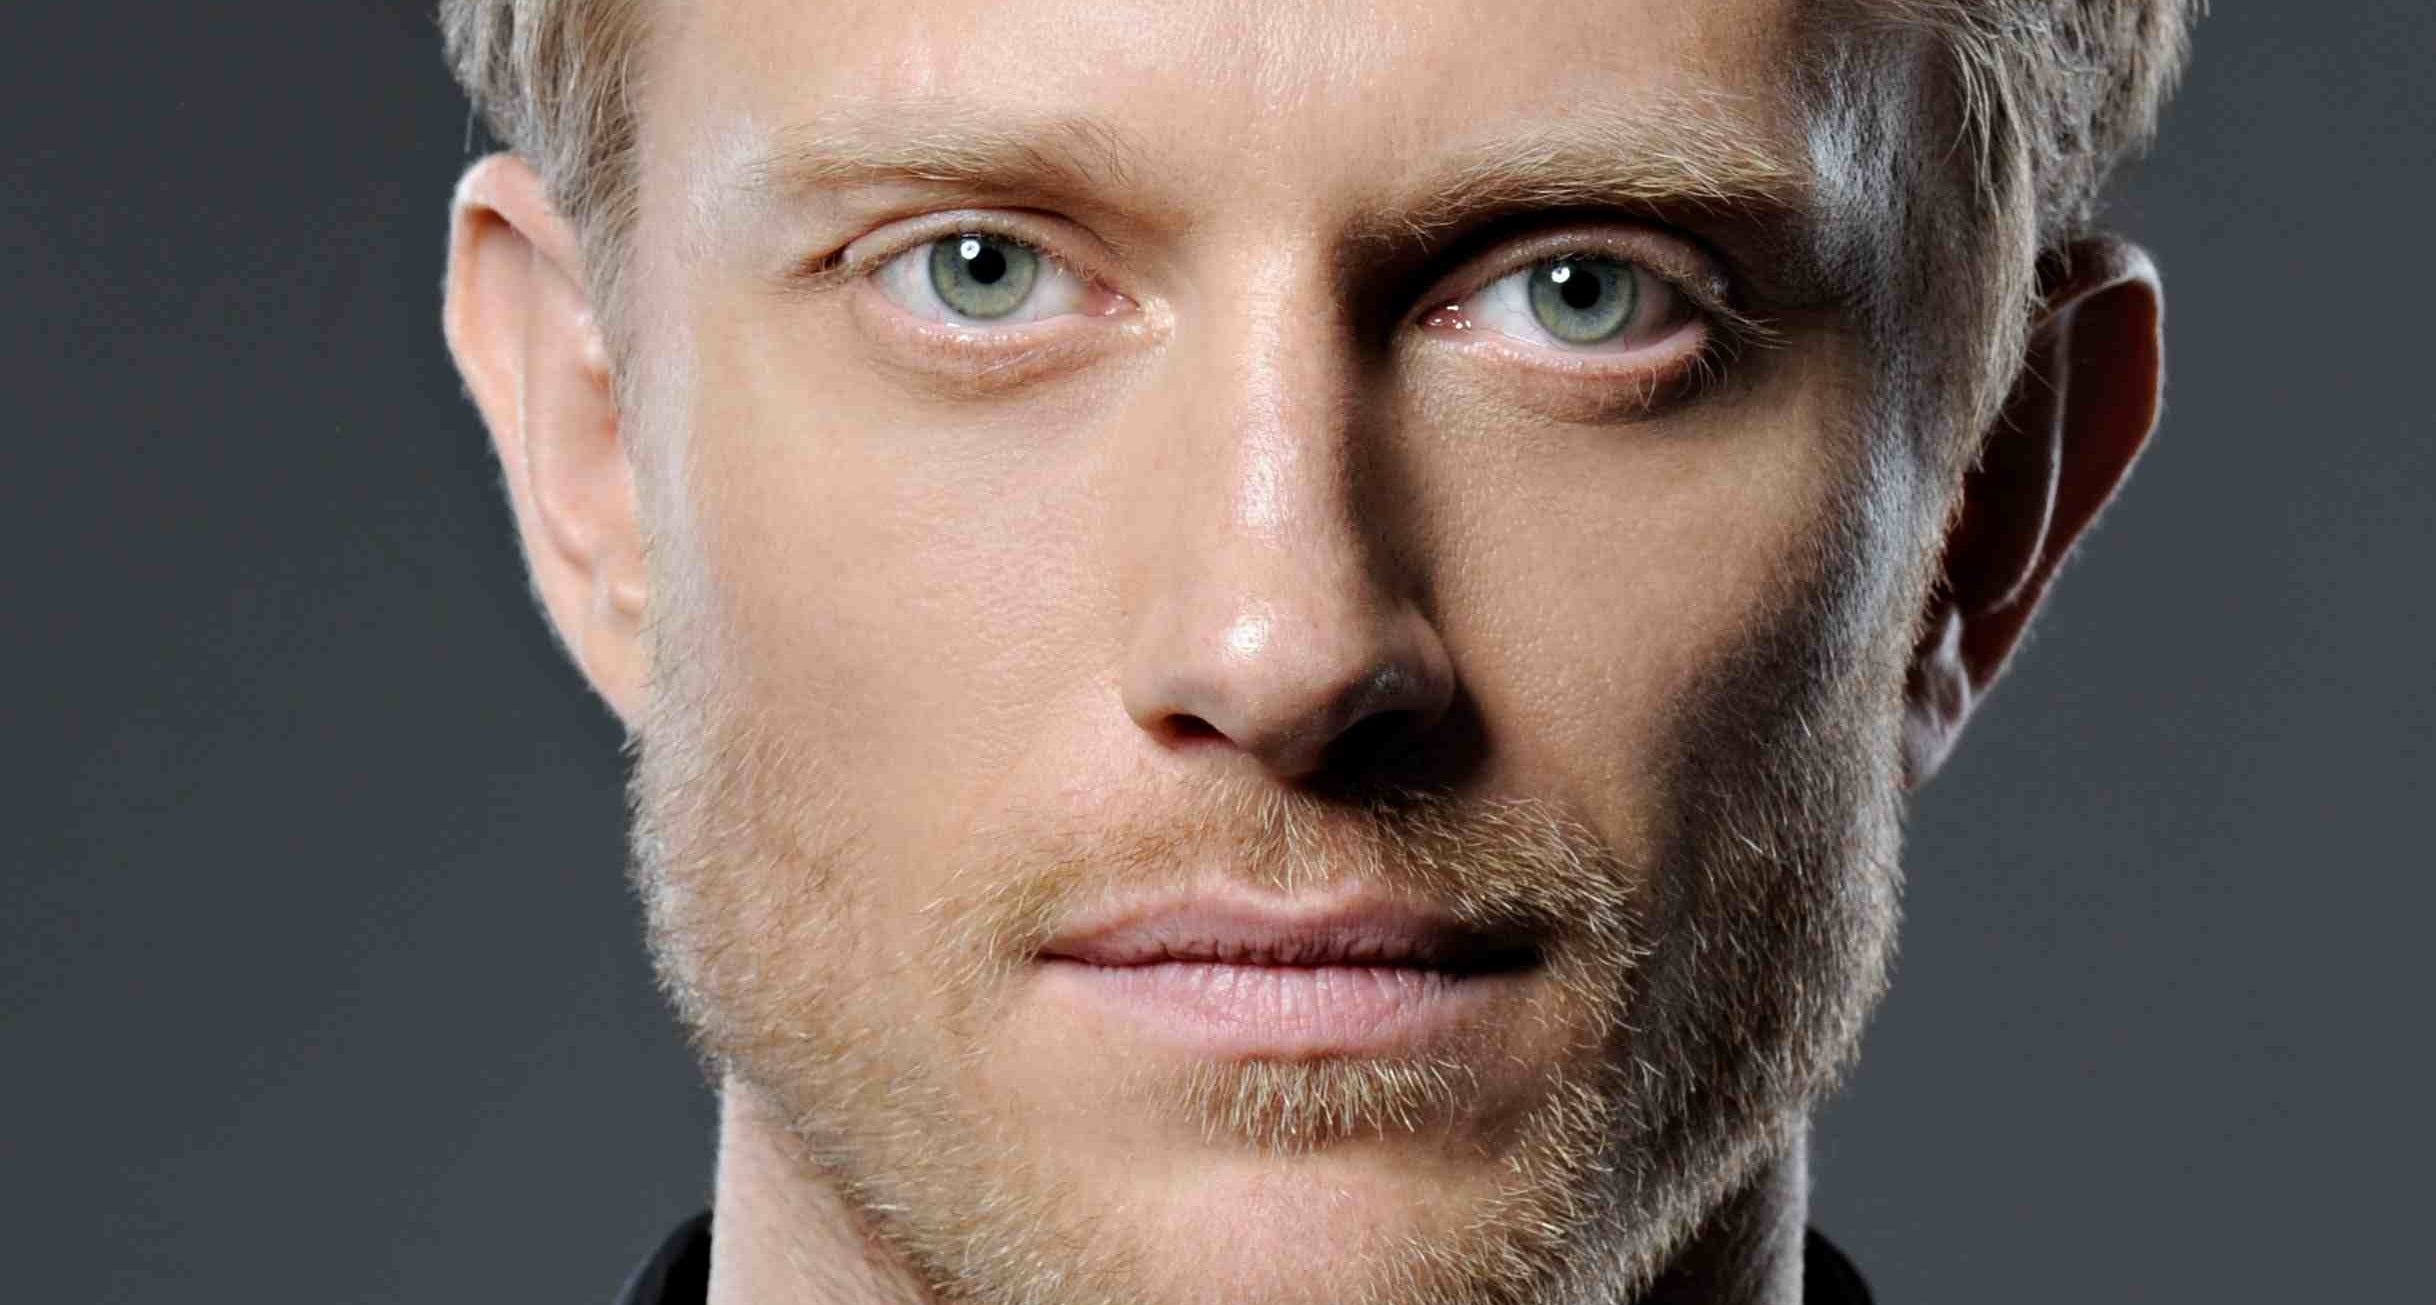 Neil Jackson Wallpapers hd